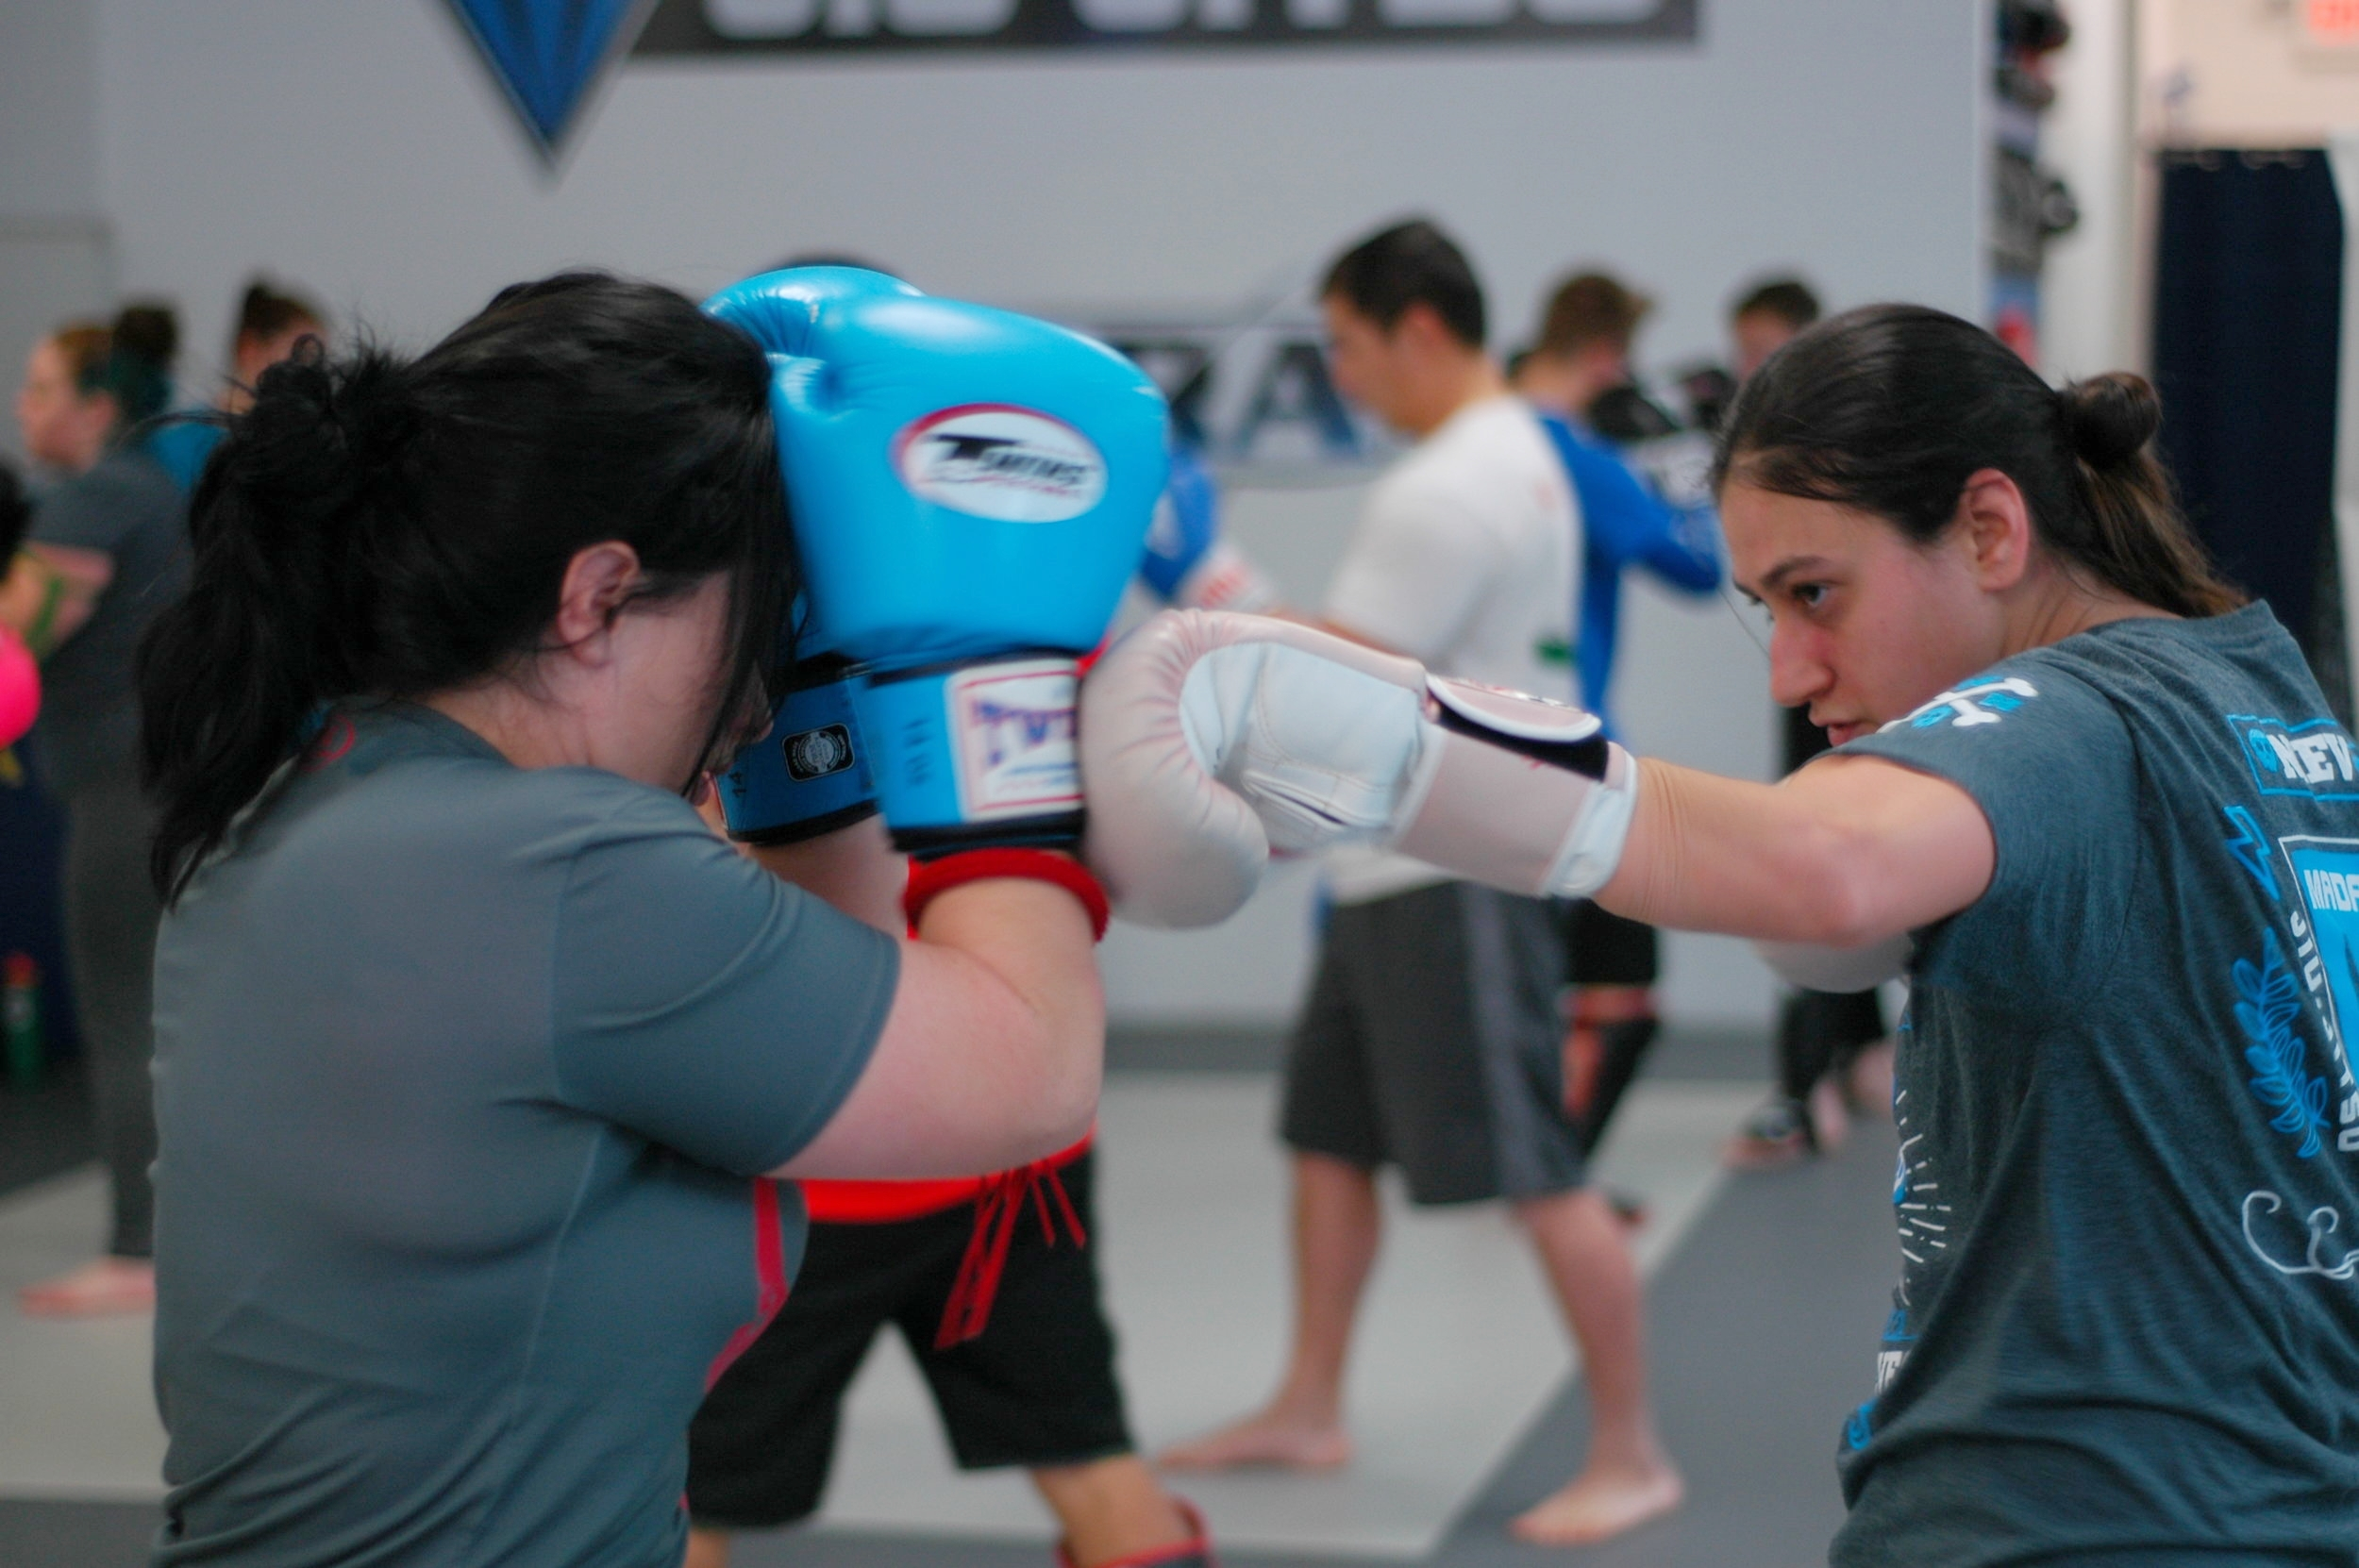 Technique drills at Saturday morning kickboxing